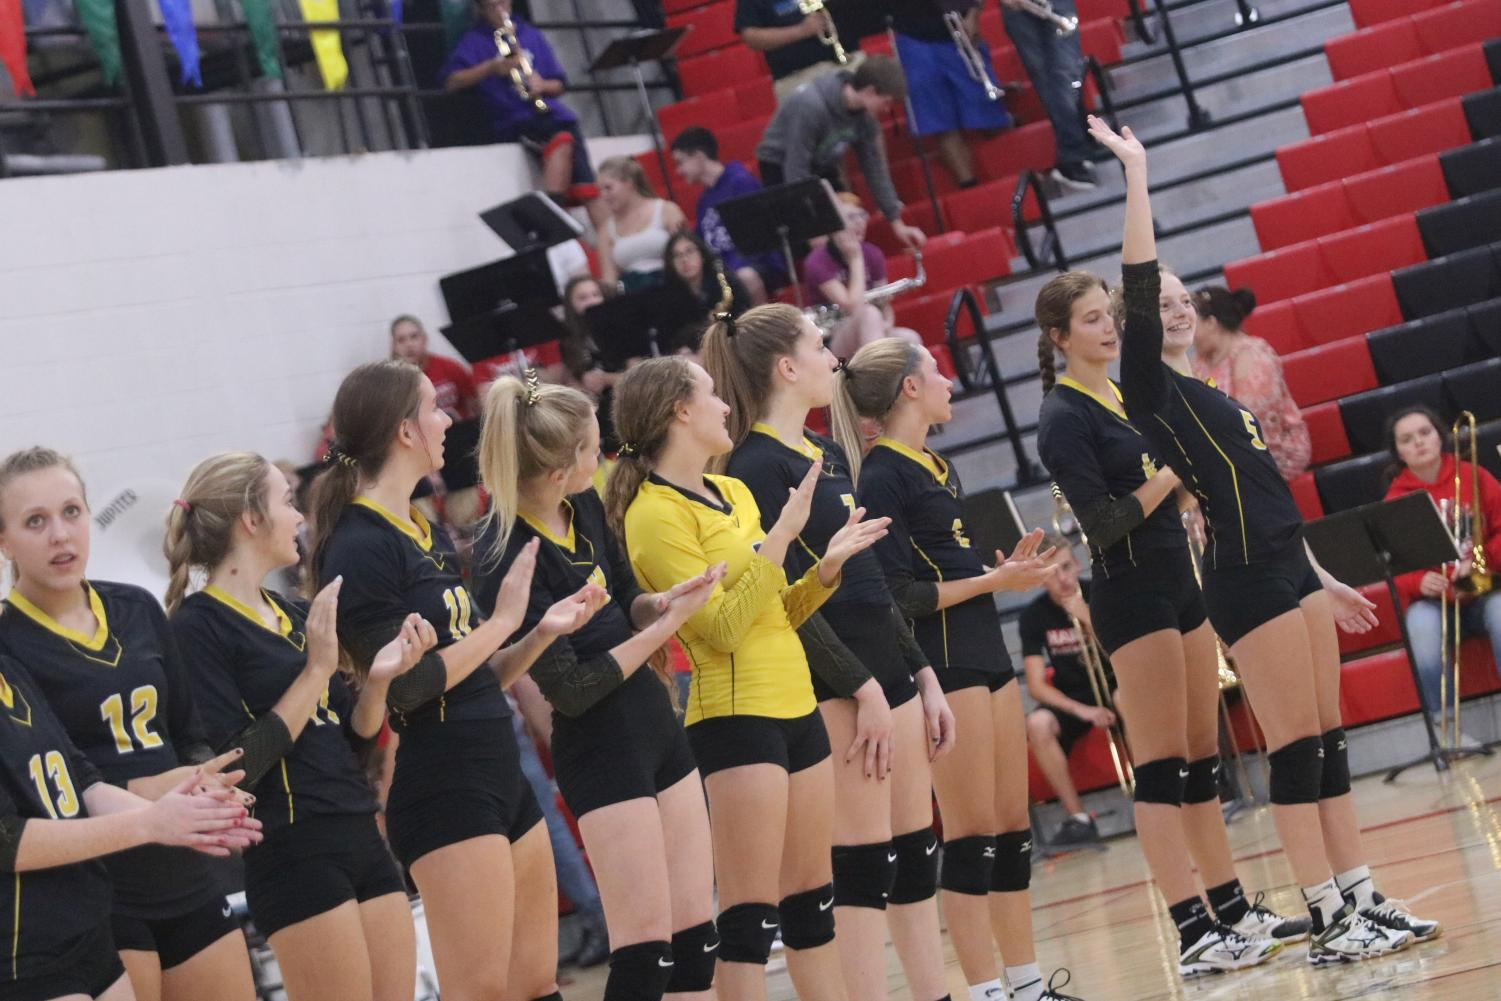 Senior Sadie Welter stands tall as her name is read aloud before the Varsity match on Thursday.